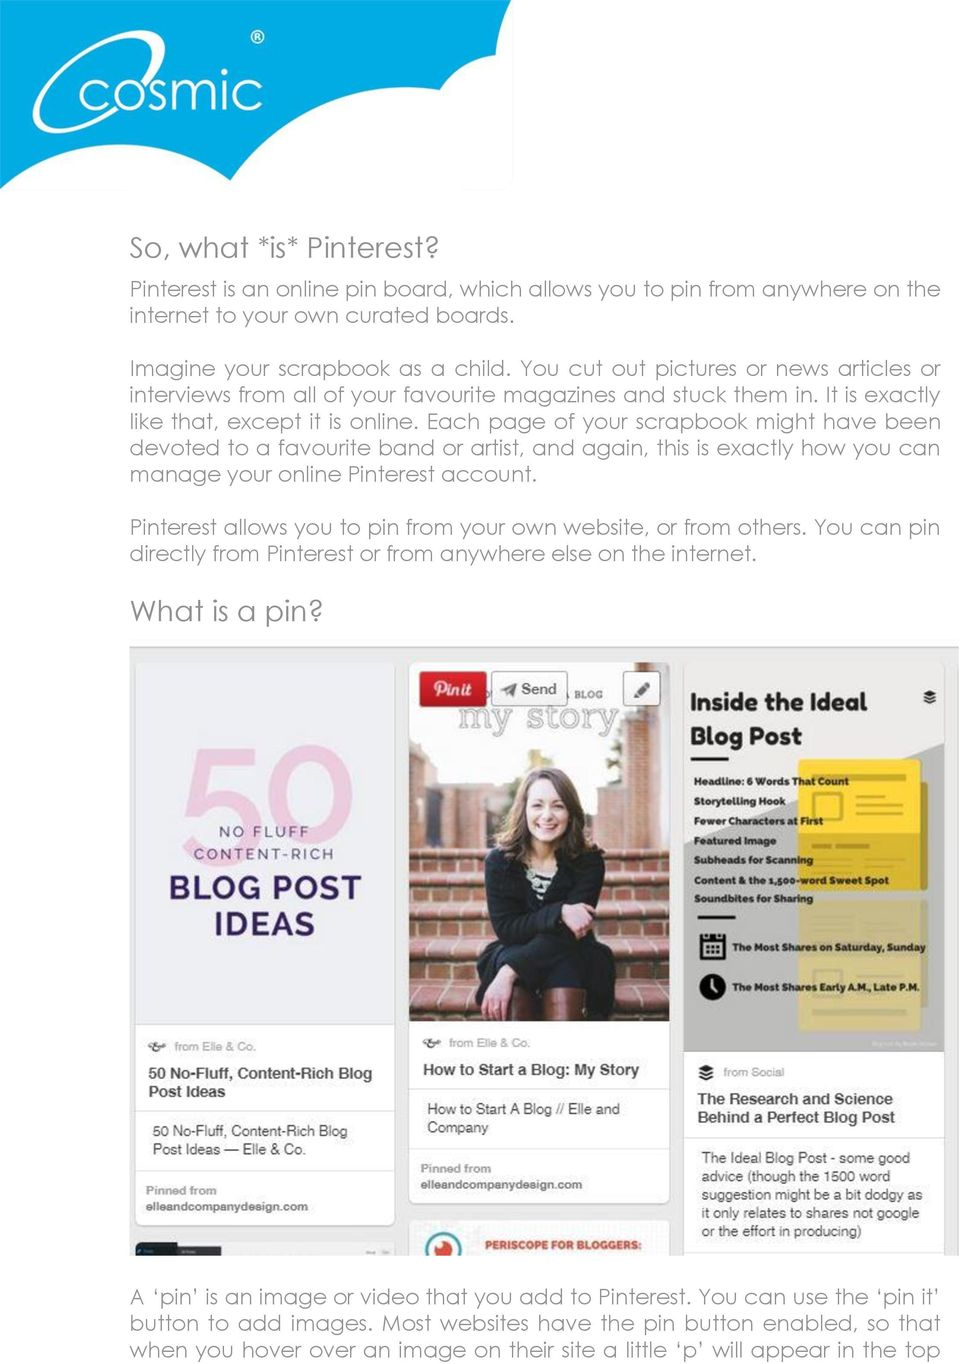 Each page of your scrapbook might have been devoted to a favourite band or artist, and again, this is exactly how you can manage your online Pinterest account.